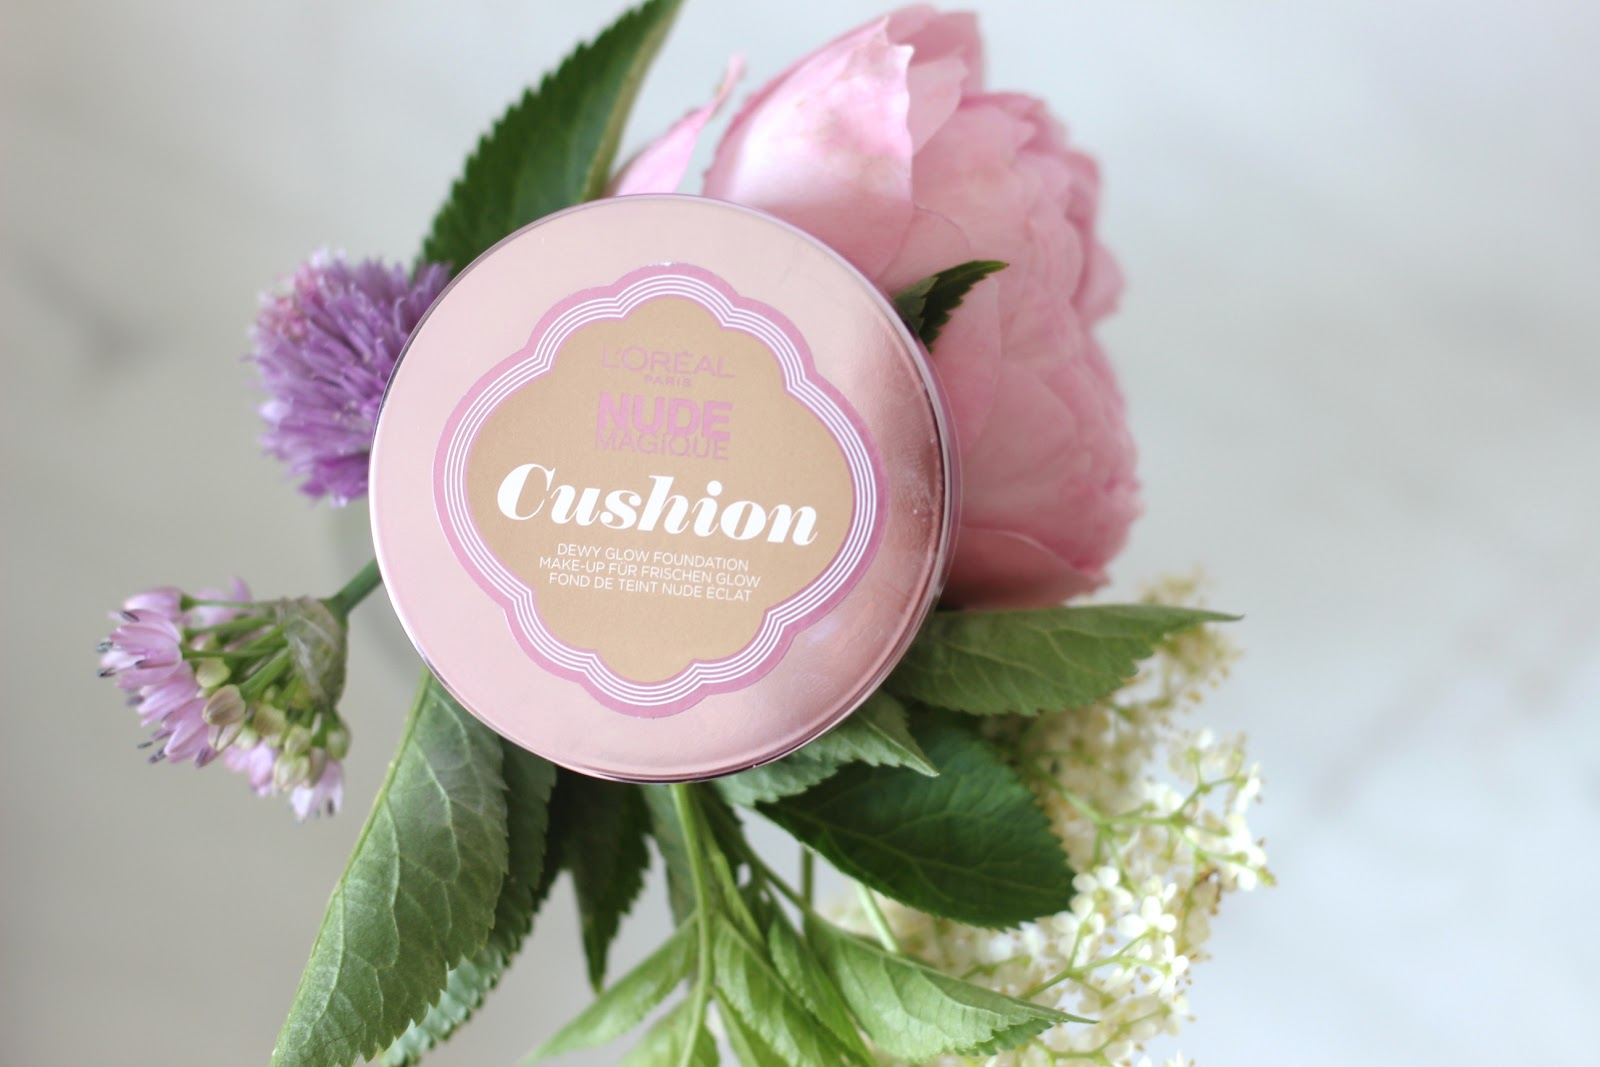 L'Oreal Cushion Foundation.